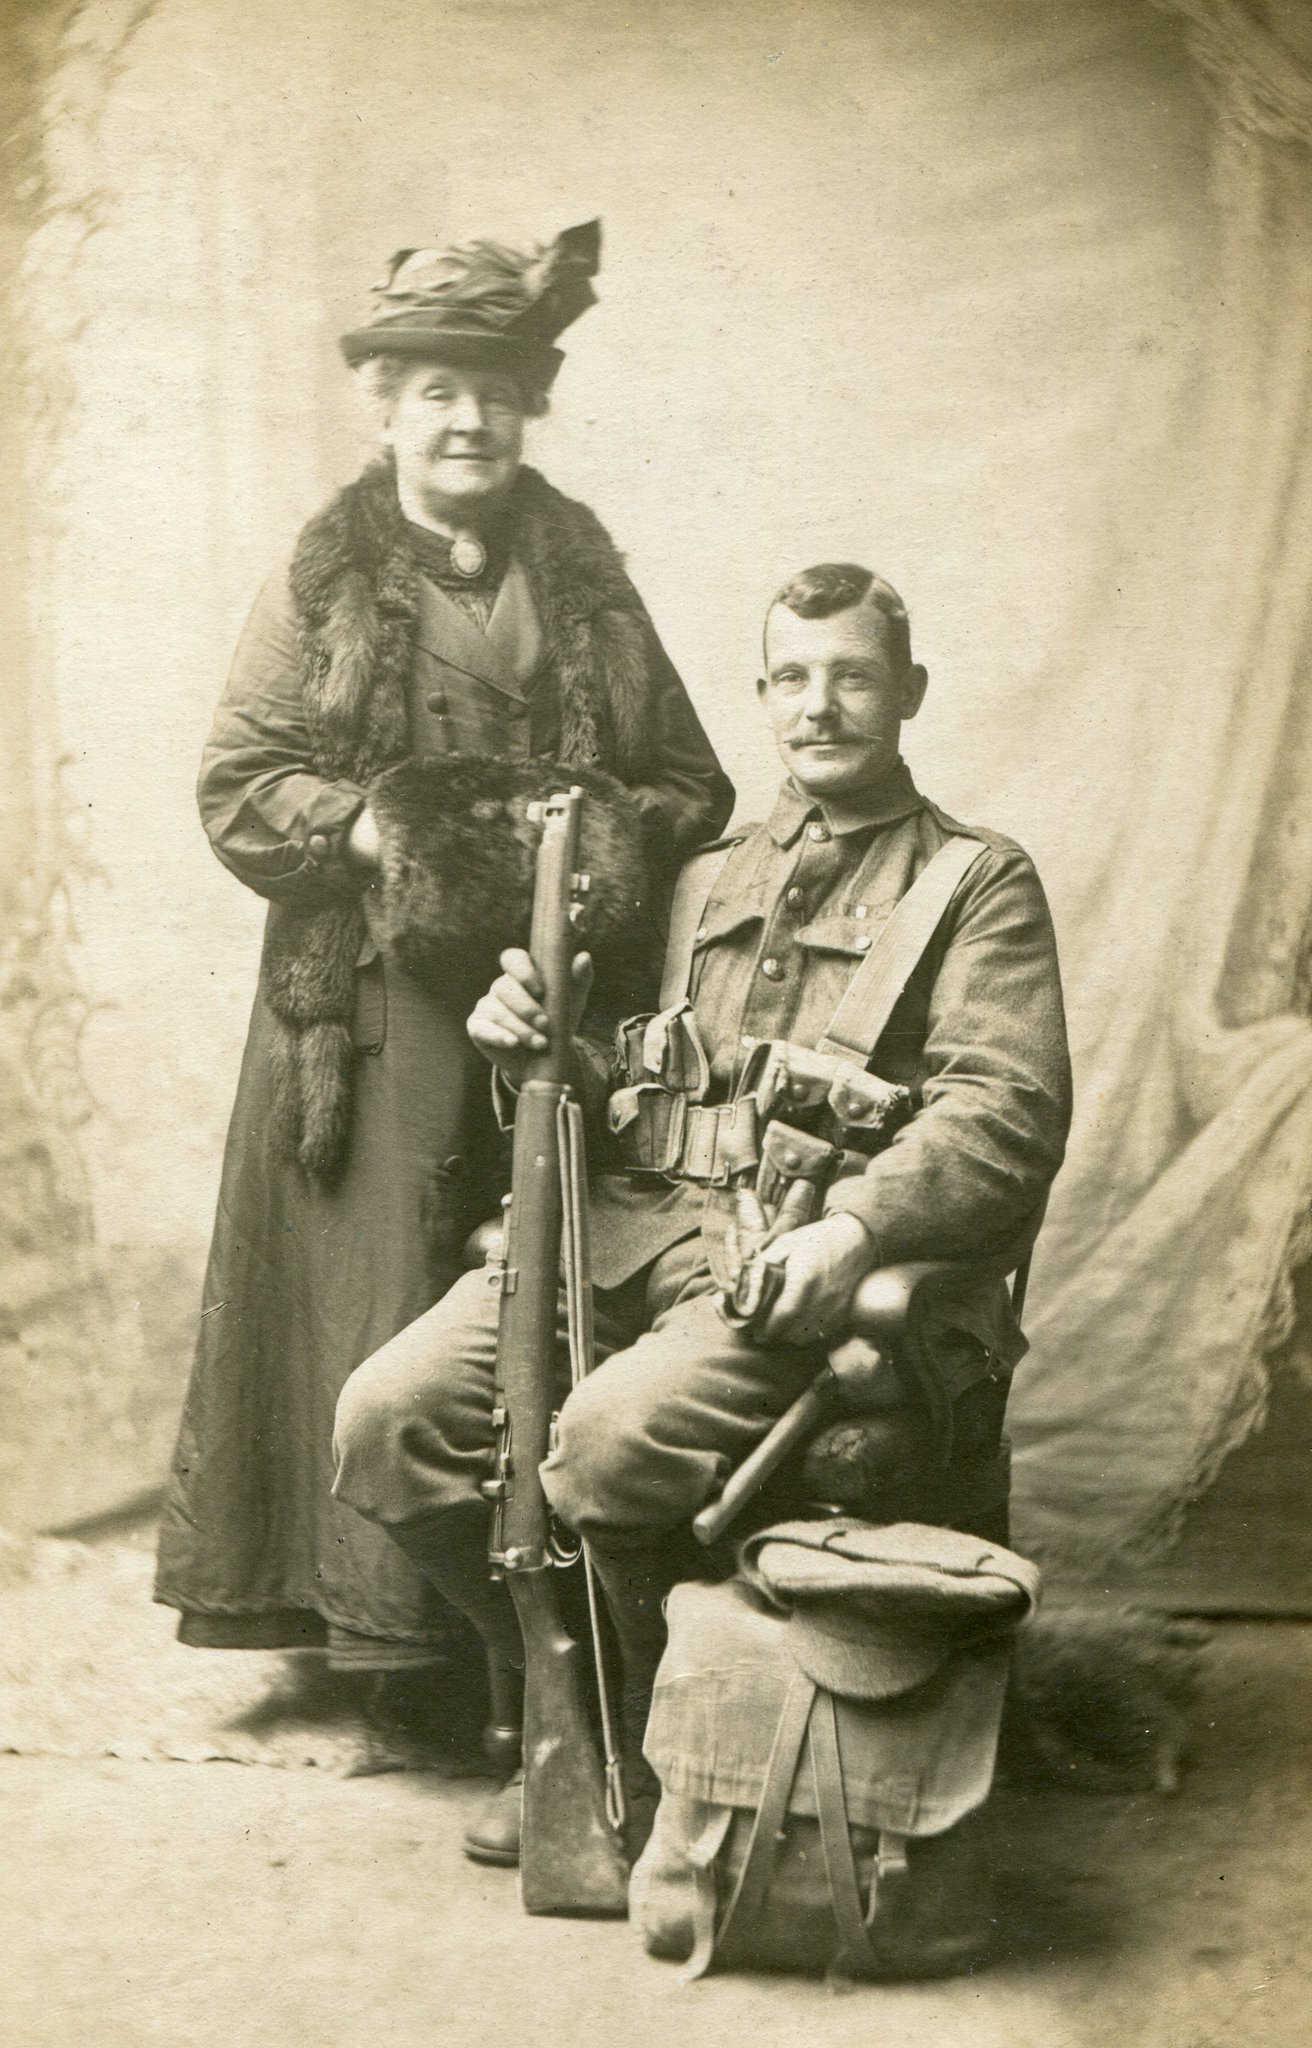 Happy #mothersday! This #WW1 image shows a proud mother with her son just back from the front line. https://t.co/VWM78HTuP6